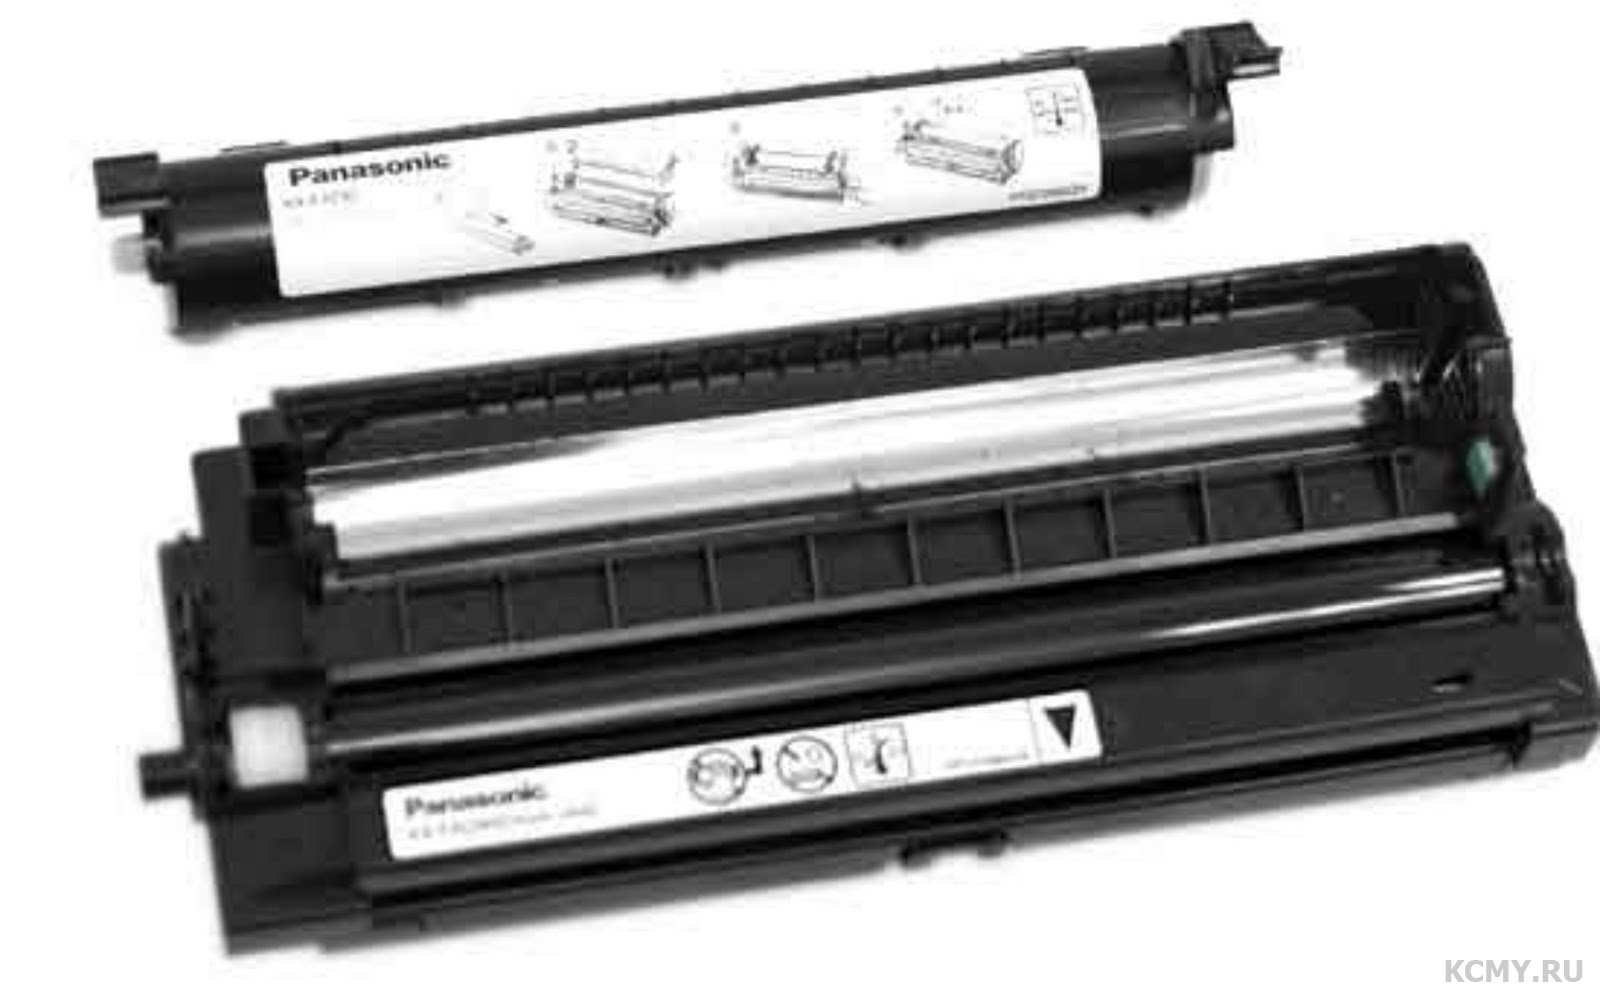 Panasonic KX-FAT411A, Panasonic KX-FAT411A7